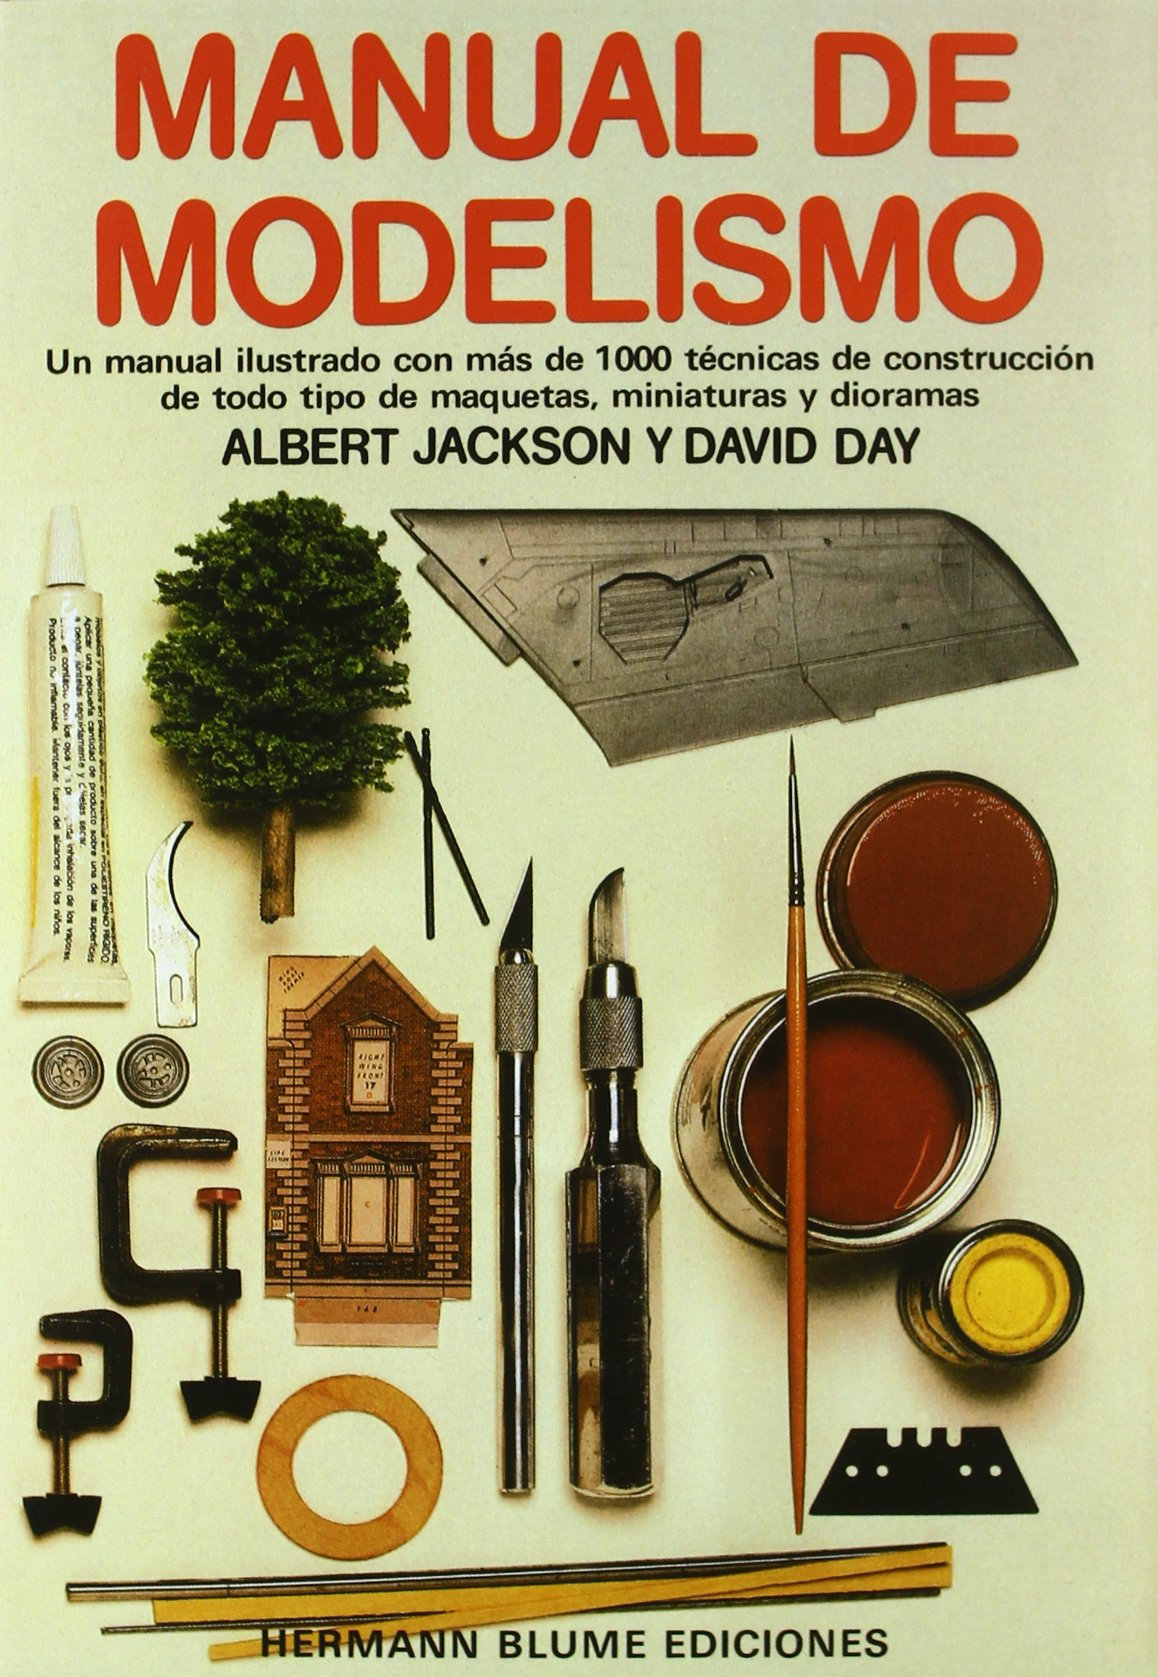 Manual de Modelismo (Spanish Edition) (Spanish) Hardcover – November, 1991